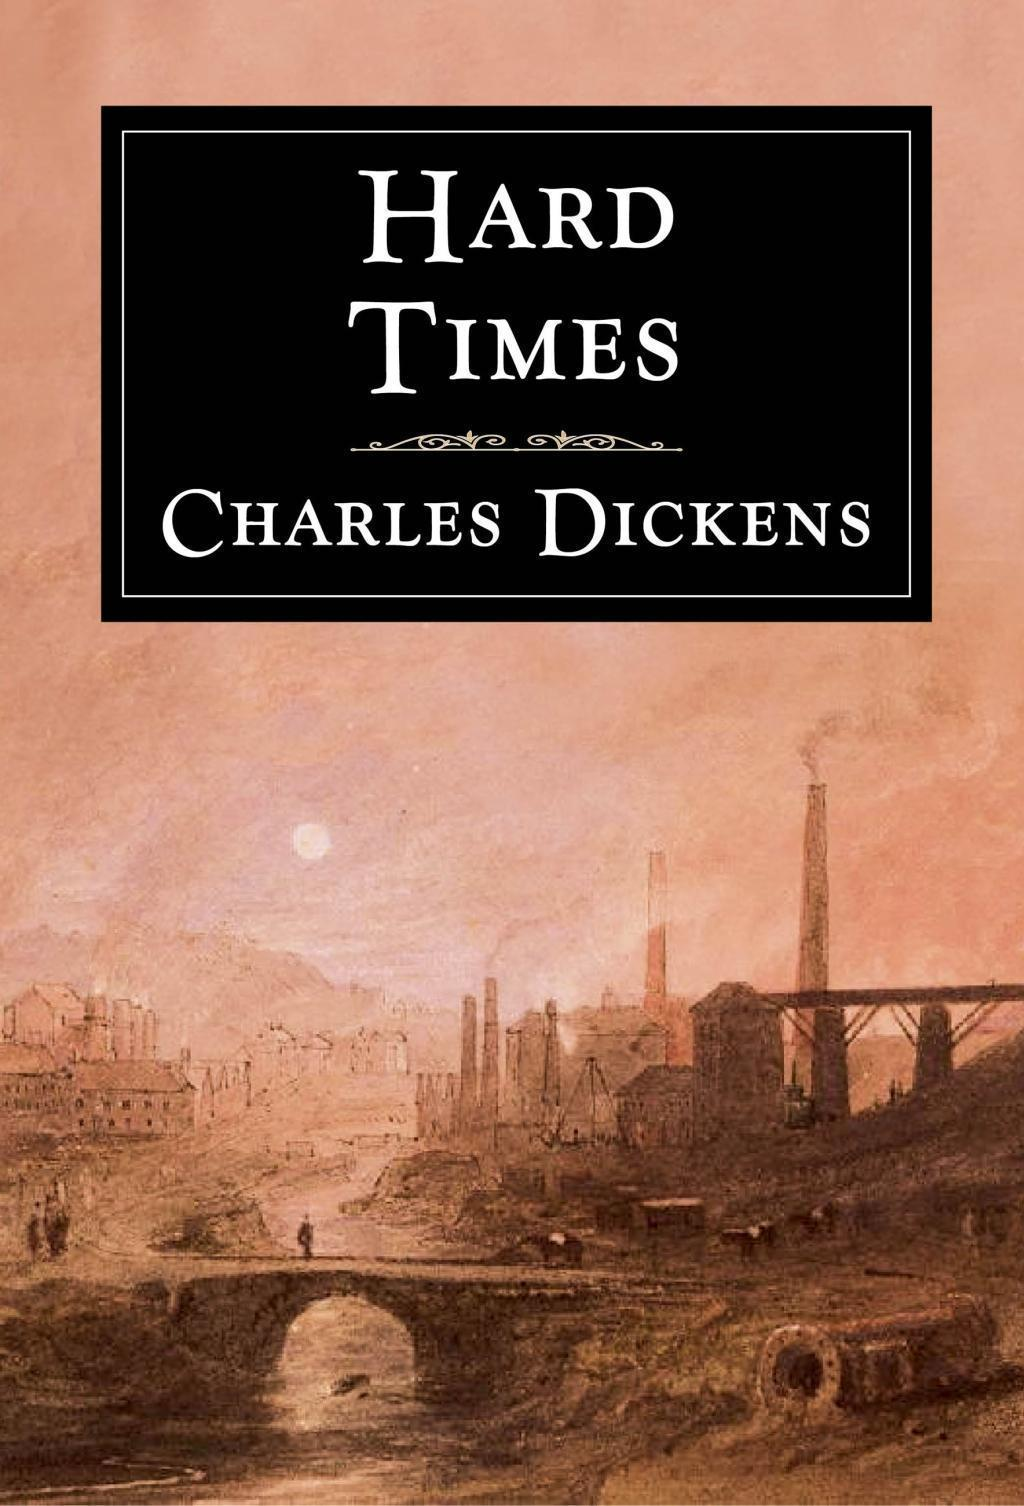 a literary analysis of the novel hard times by charles dickens Hard times: theme analysis, free study guides and book notes including comprehensive chapter analysis, complete summary analysis, author biography information, character profiles, theme analysis, metaphor analysis, and top ten quotes on classic literature.